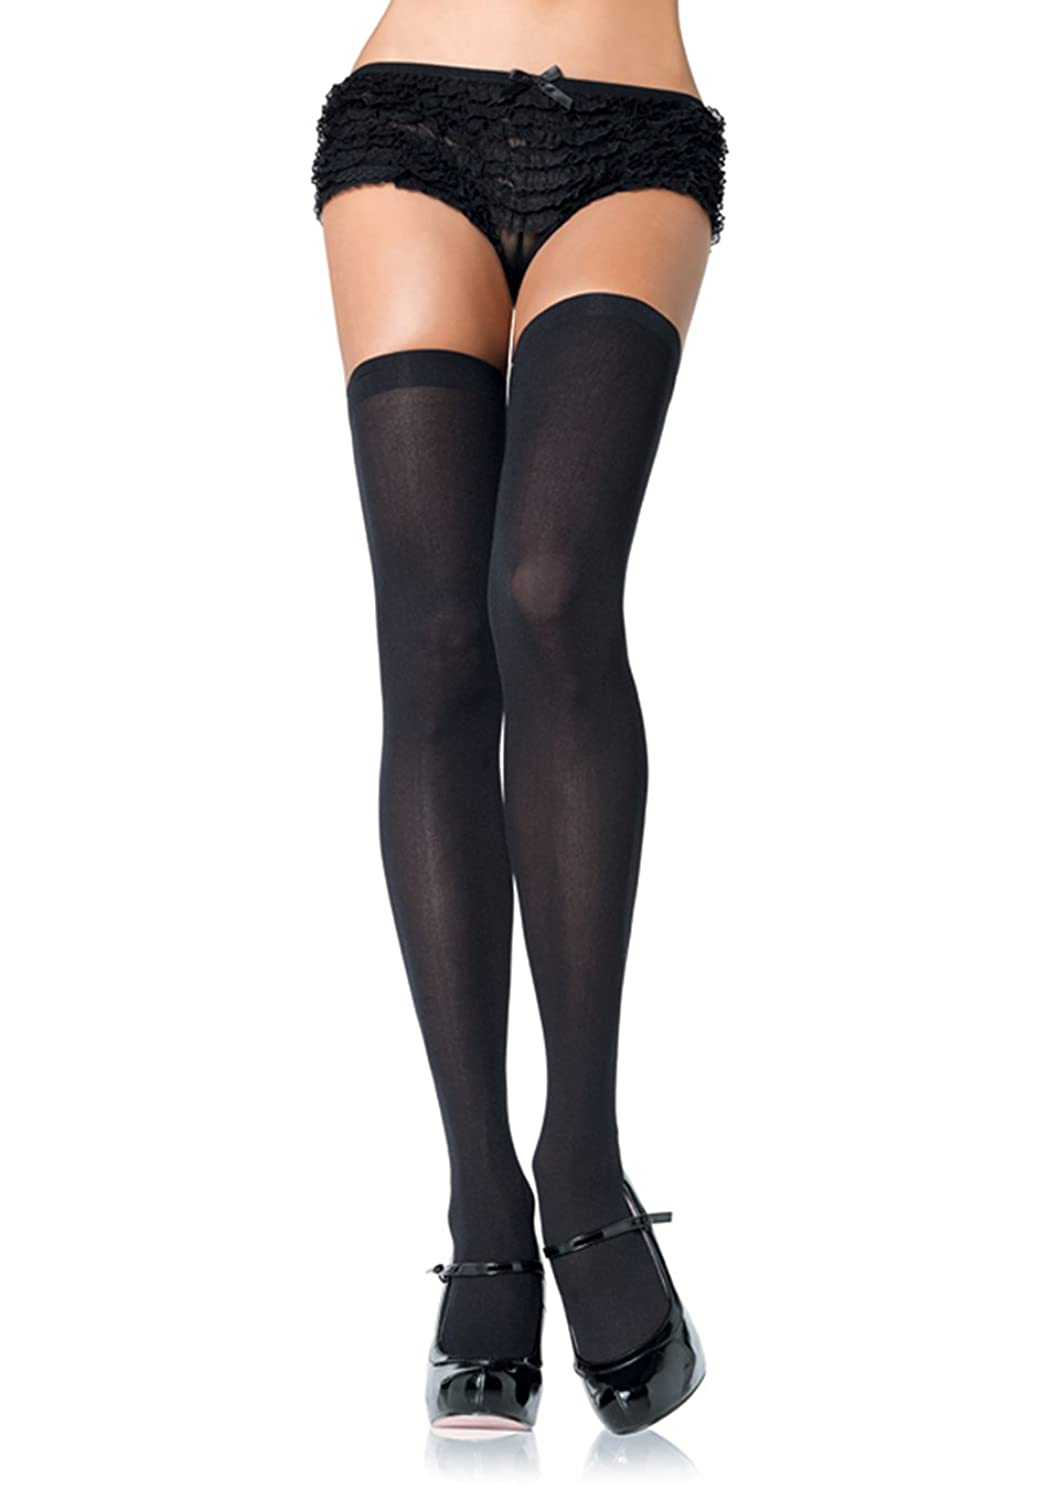 Fashion look from june 2014 featuring thigh high hosiery purple - Leg Avenue Women S Opaque Nylon Thigh High Stockings At Amazon Women S Clothing Store Thigh Highs Hosiery